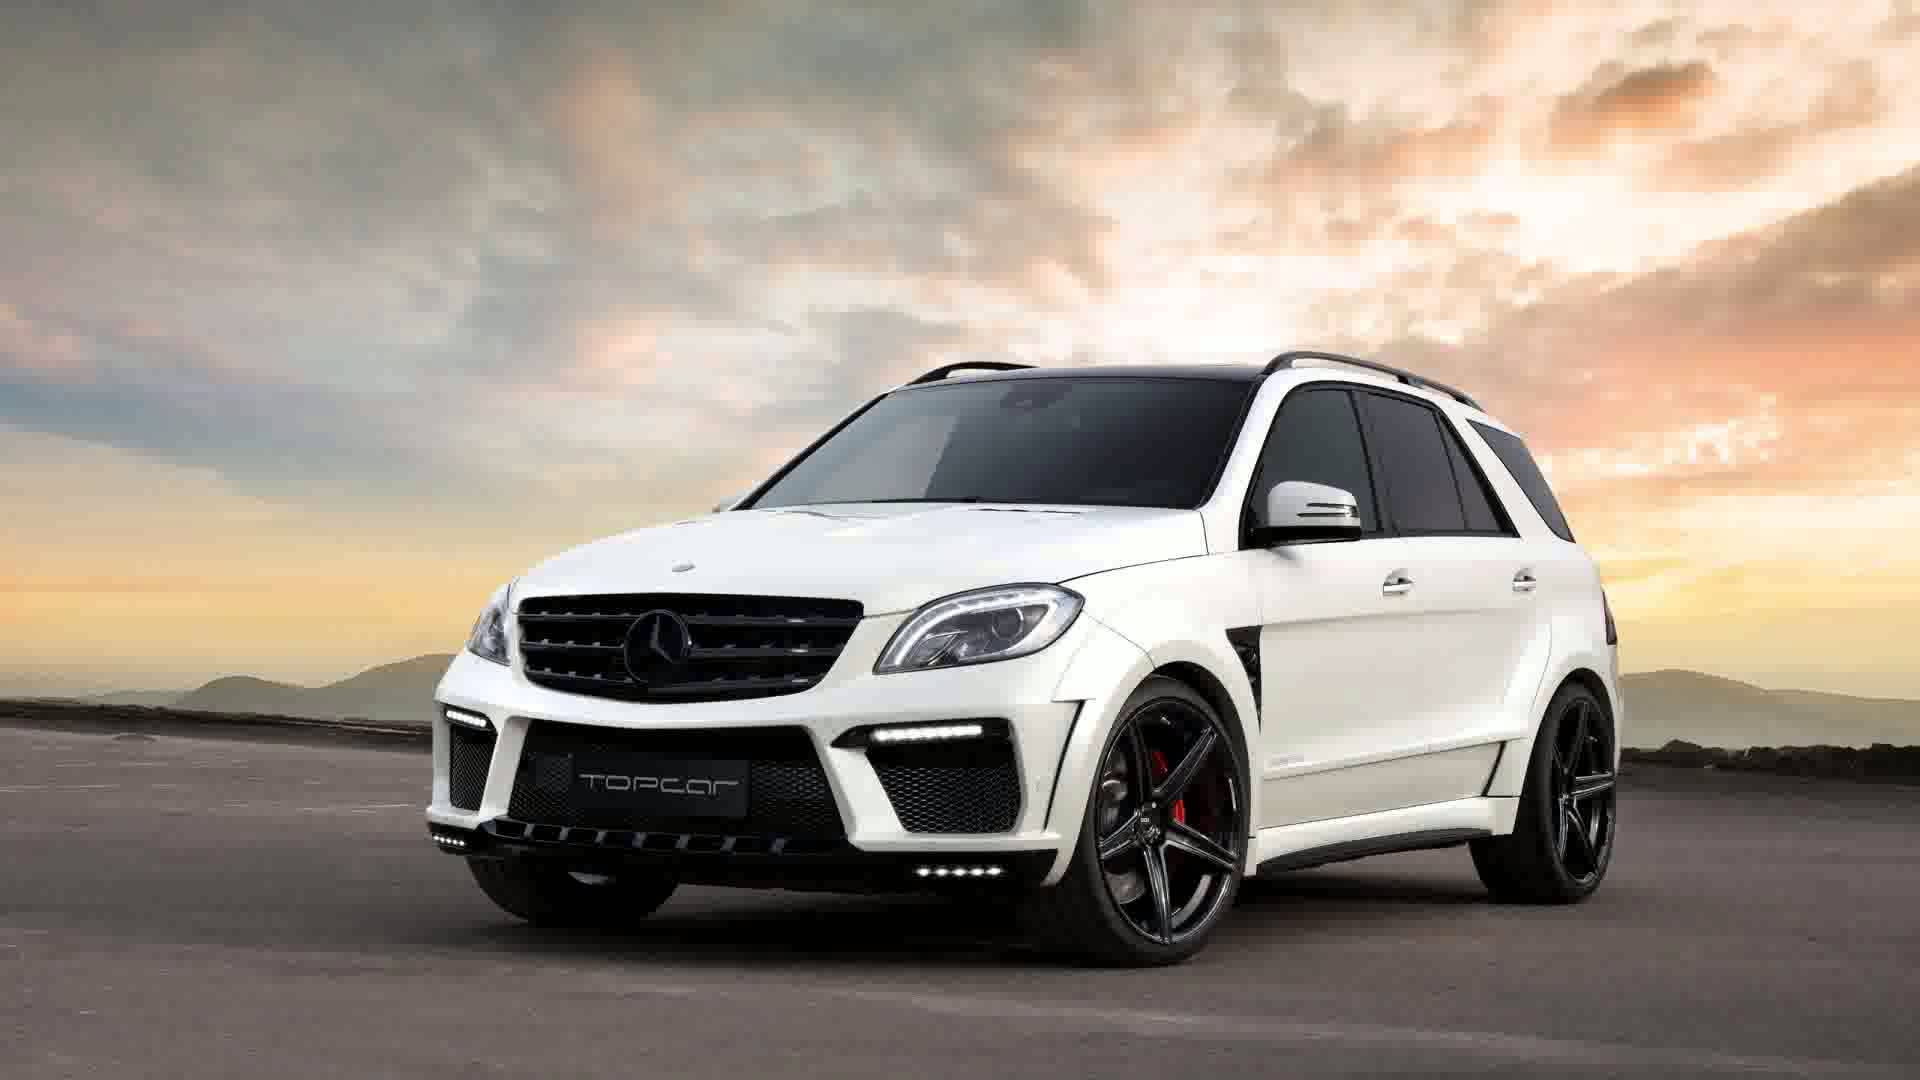 Comparison mercedes benz m class ml63 amg 2015 vs for Mercedes benz v6